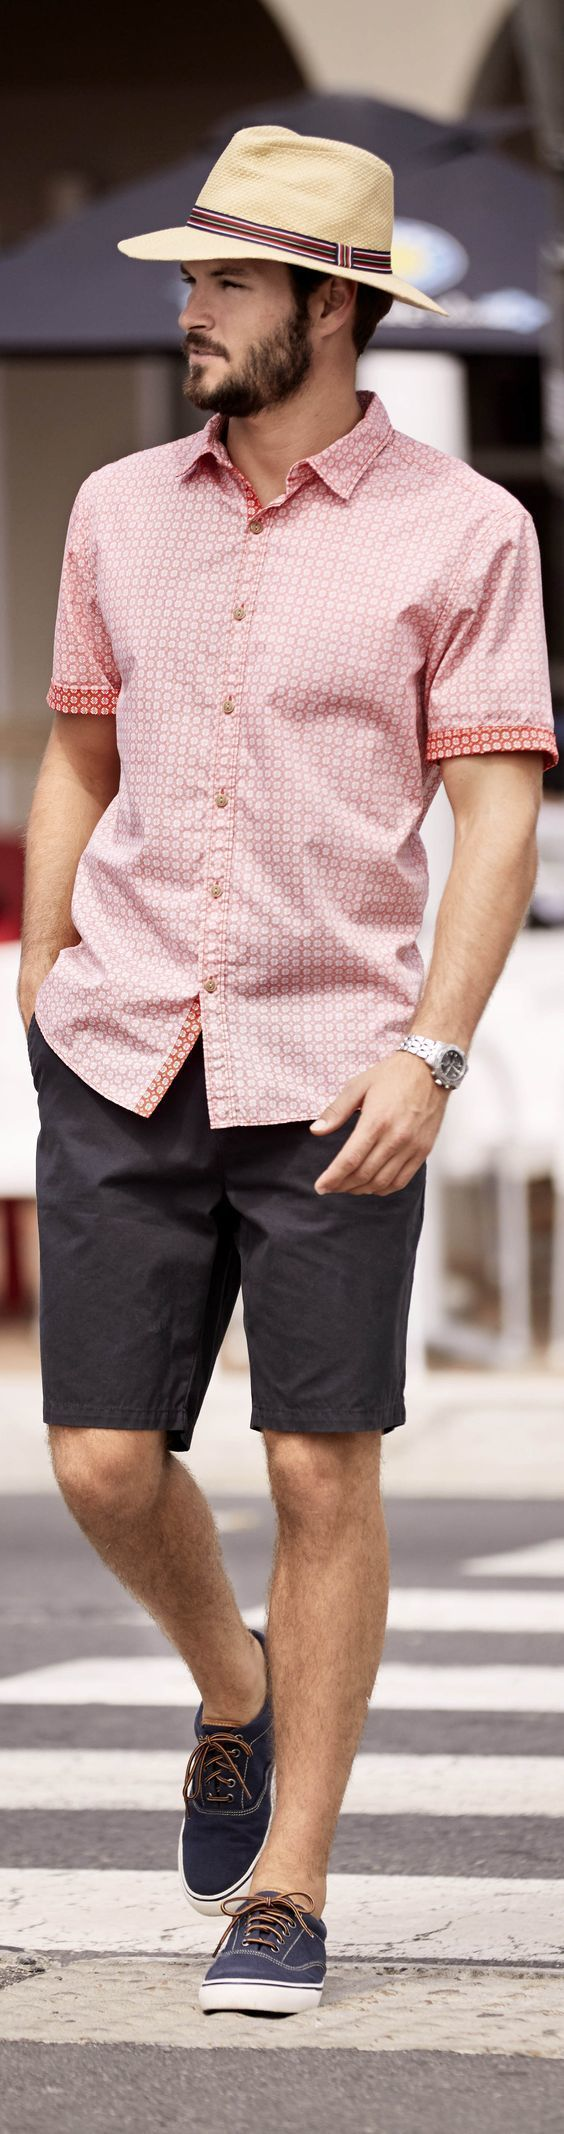 How to Wear a Pink Shirt (136 looks) | Men's Fashion